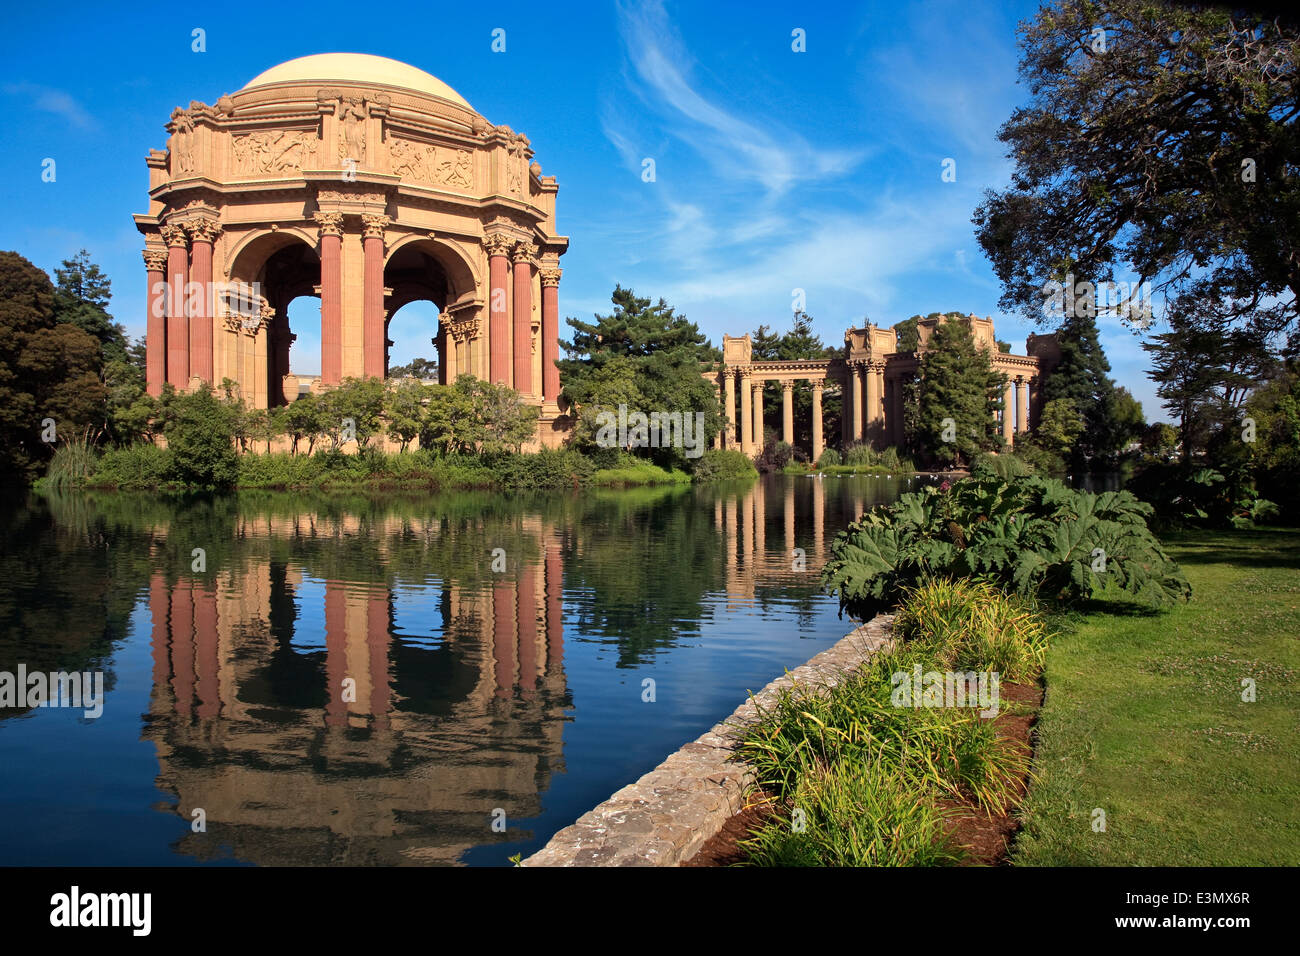 Pond And Gardens At The Roman Style PALACE OF FINE ARTS THEATRE